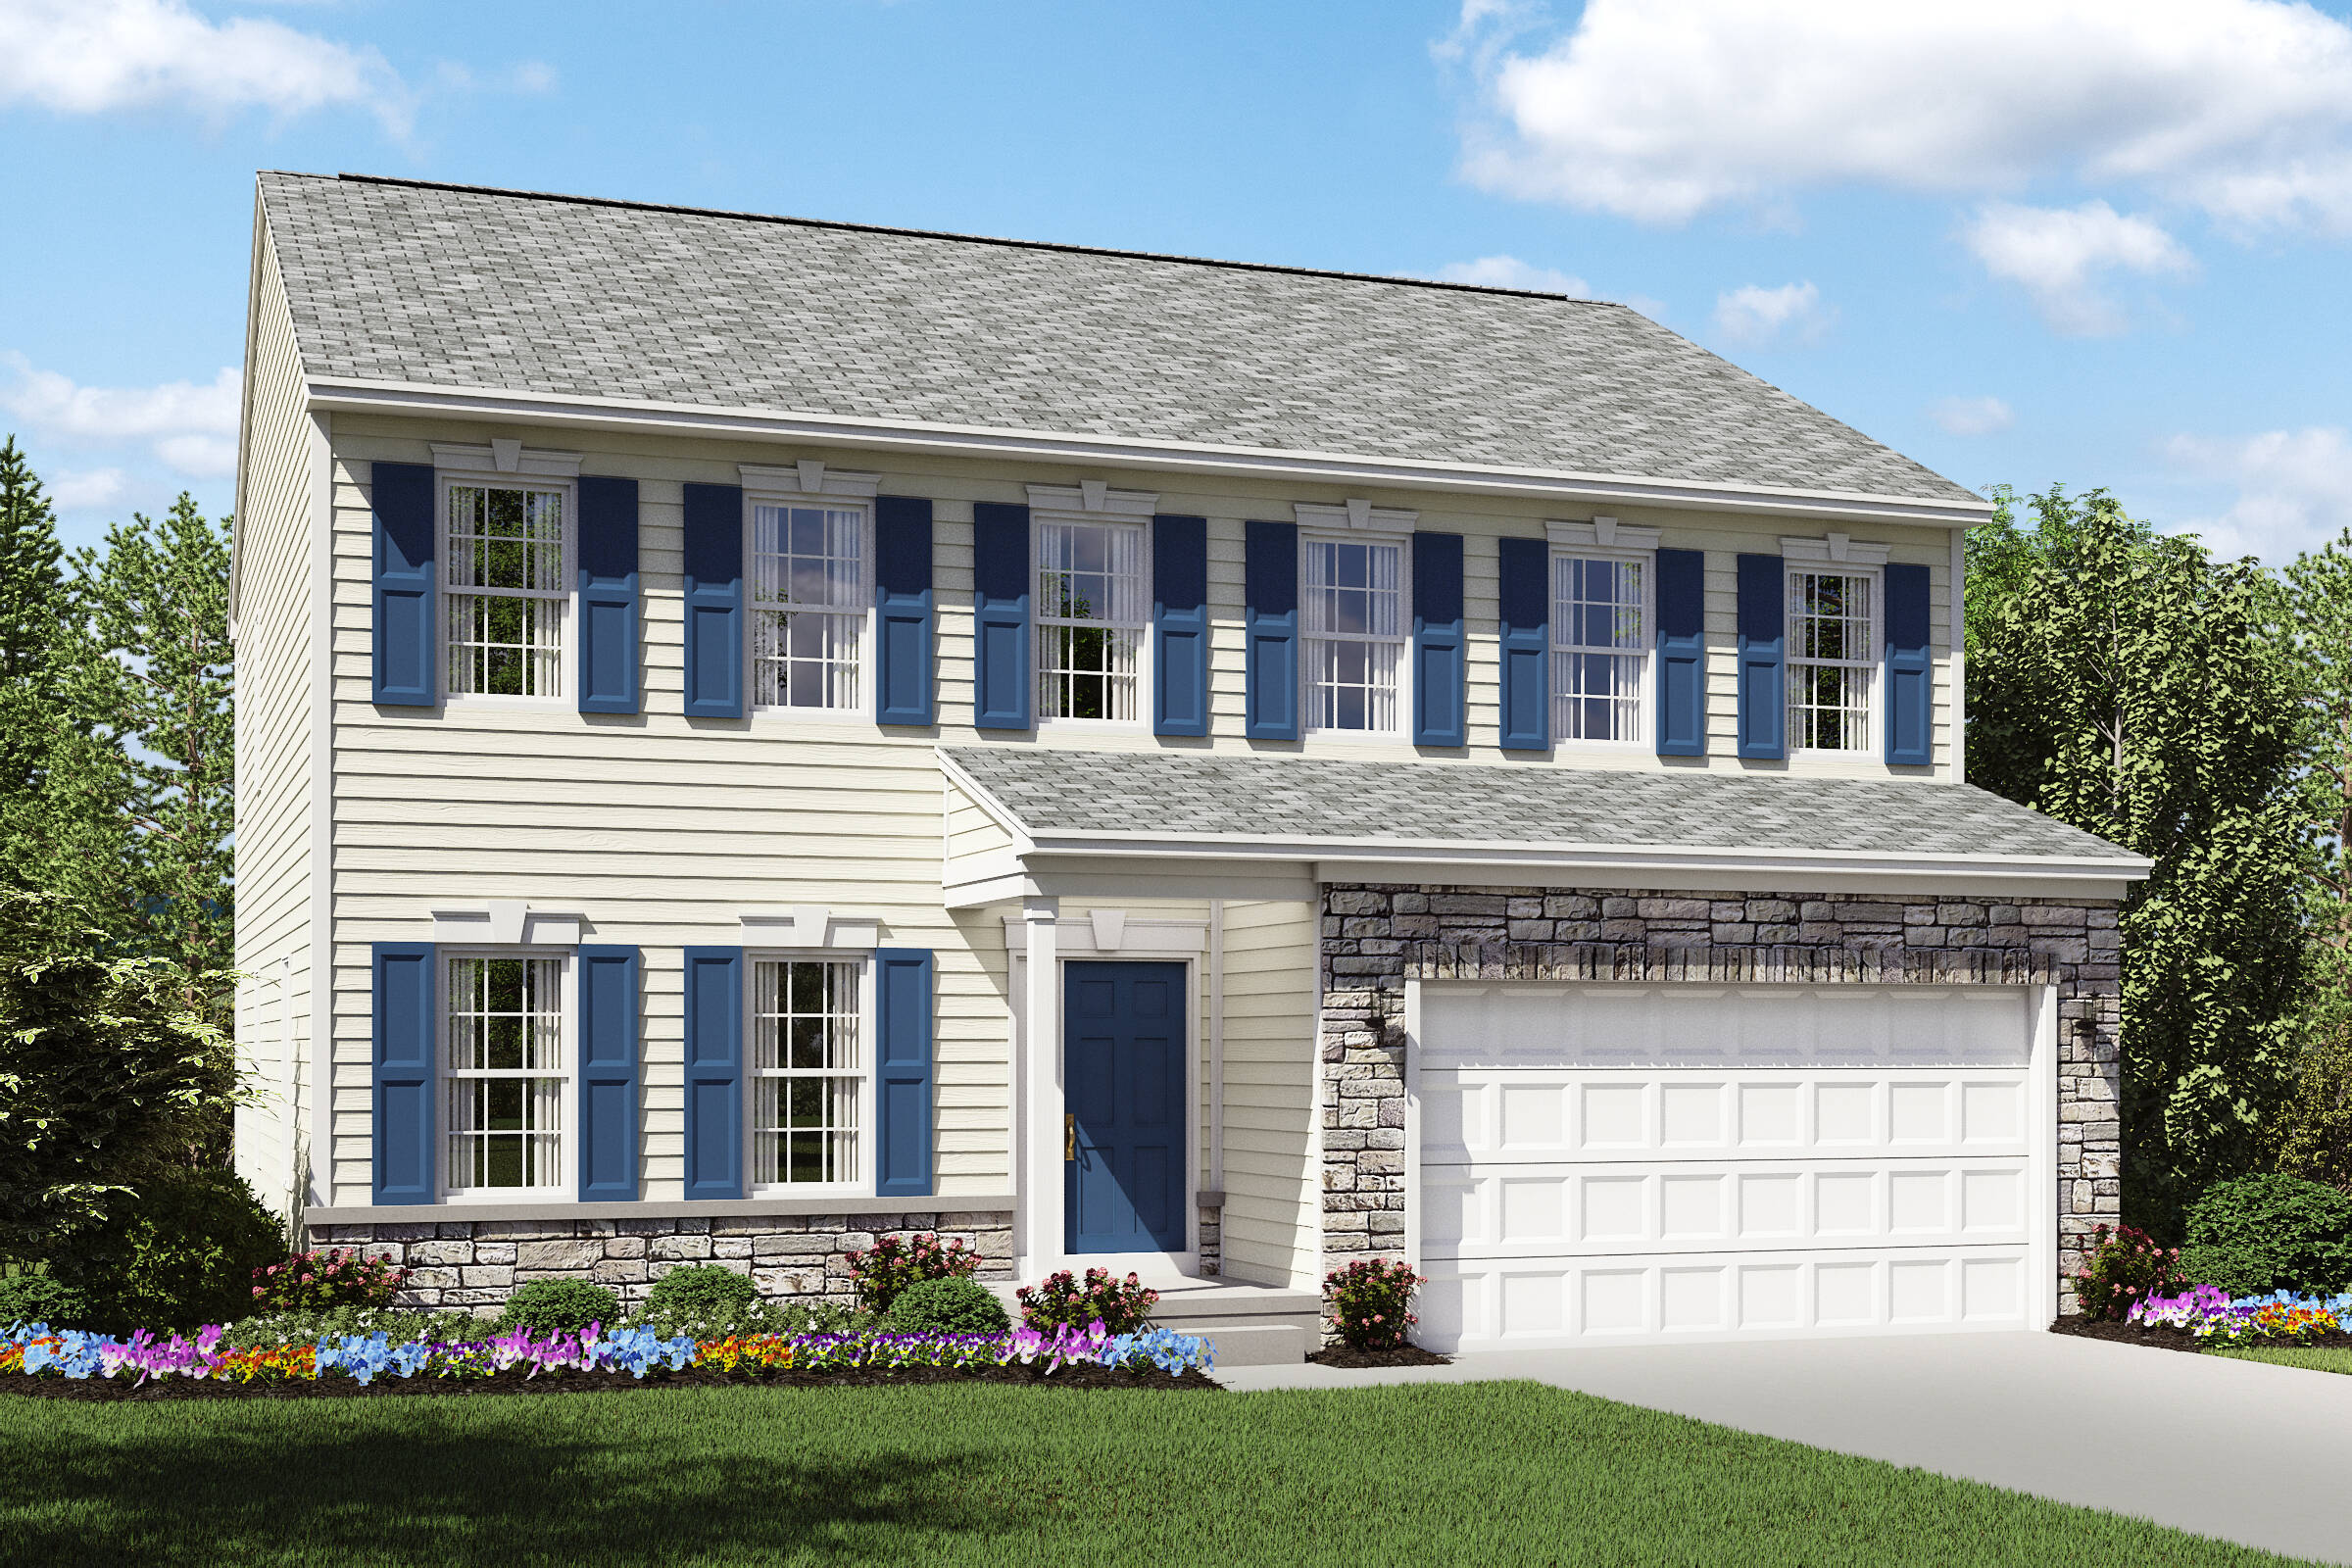 brantwood at homes for sales cleveland west